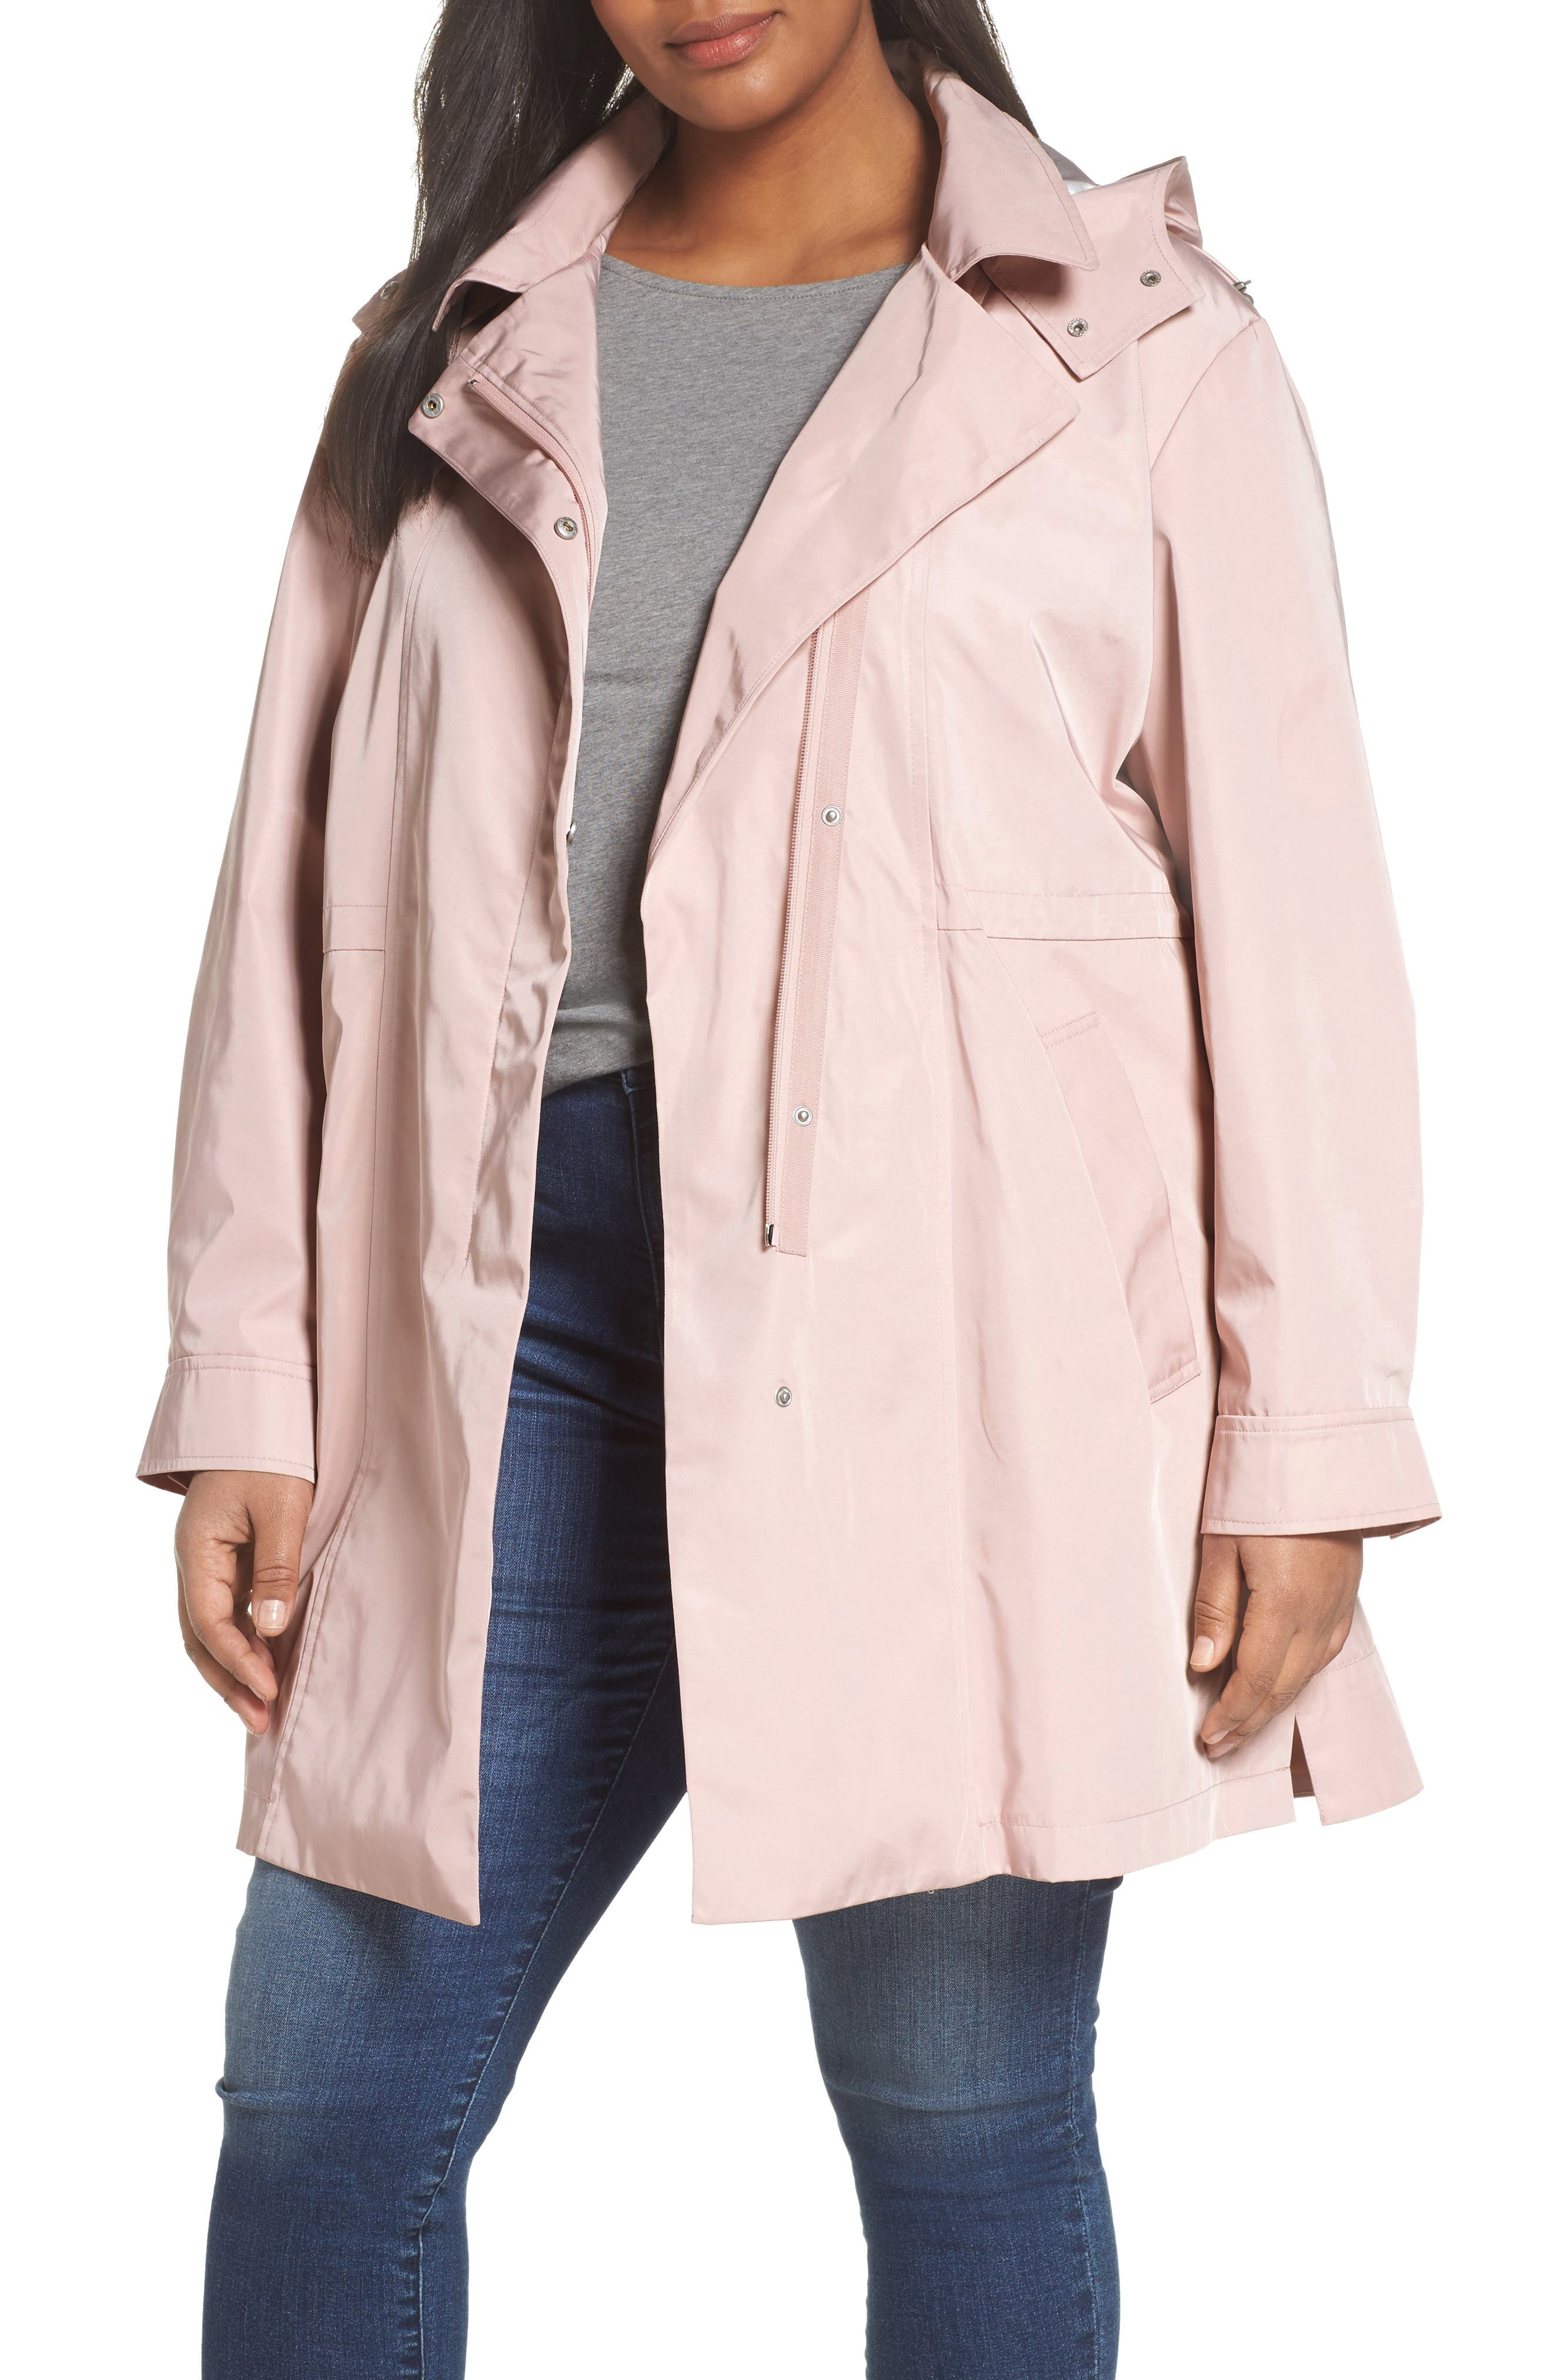 Tech Hooded Trench Coat,                             Main thumbnail 1, color,                             Misty Rose